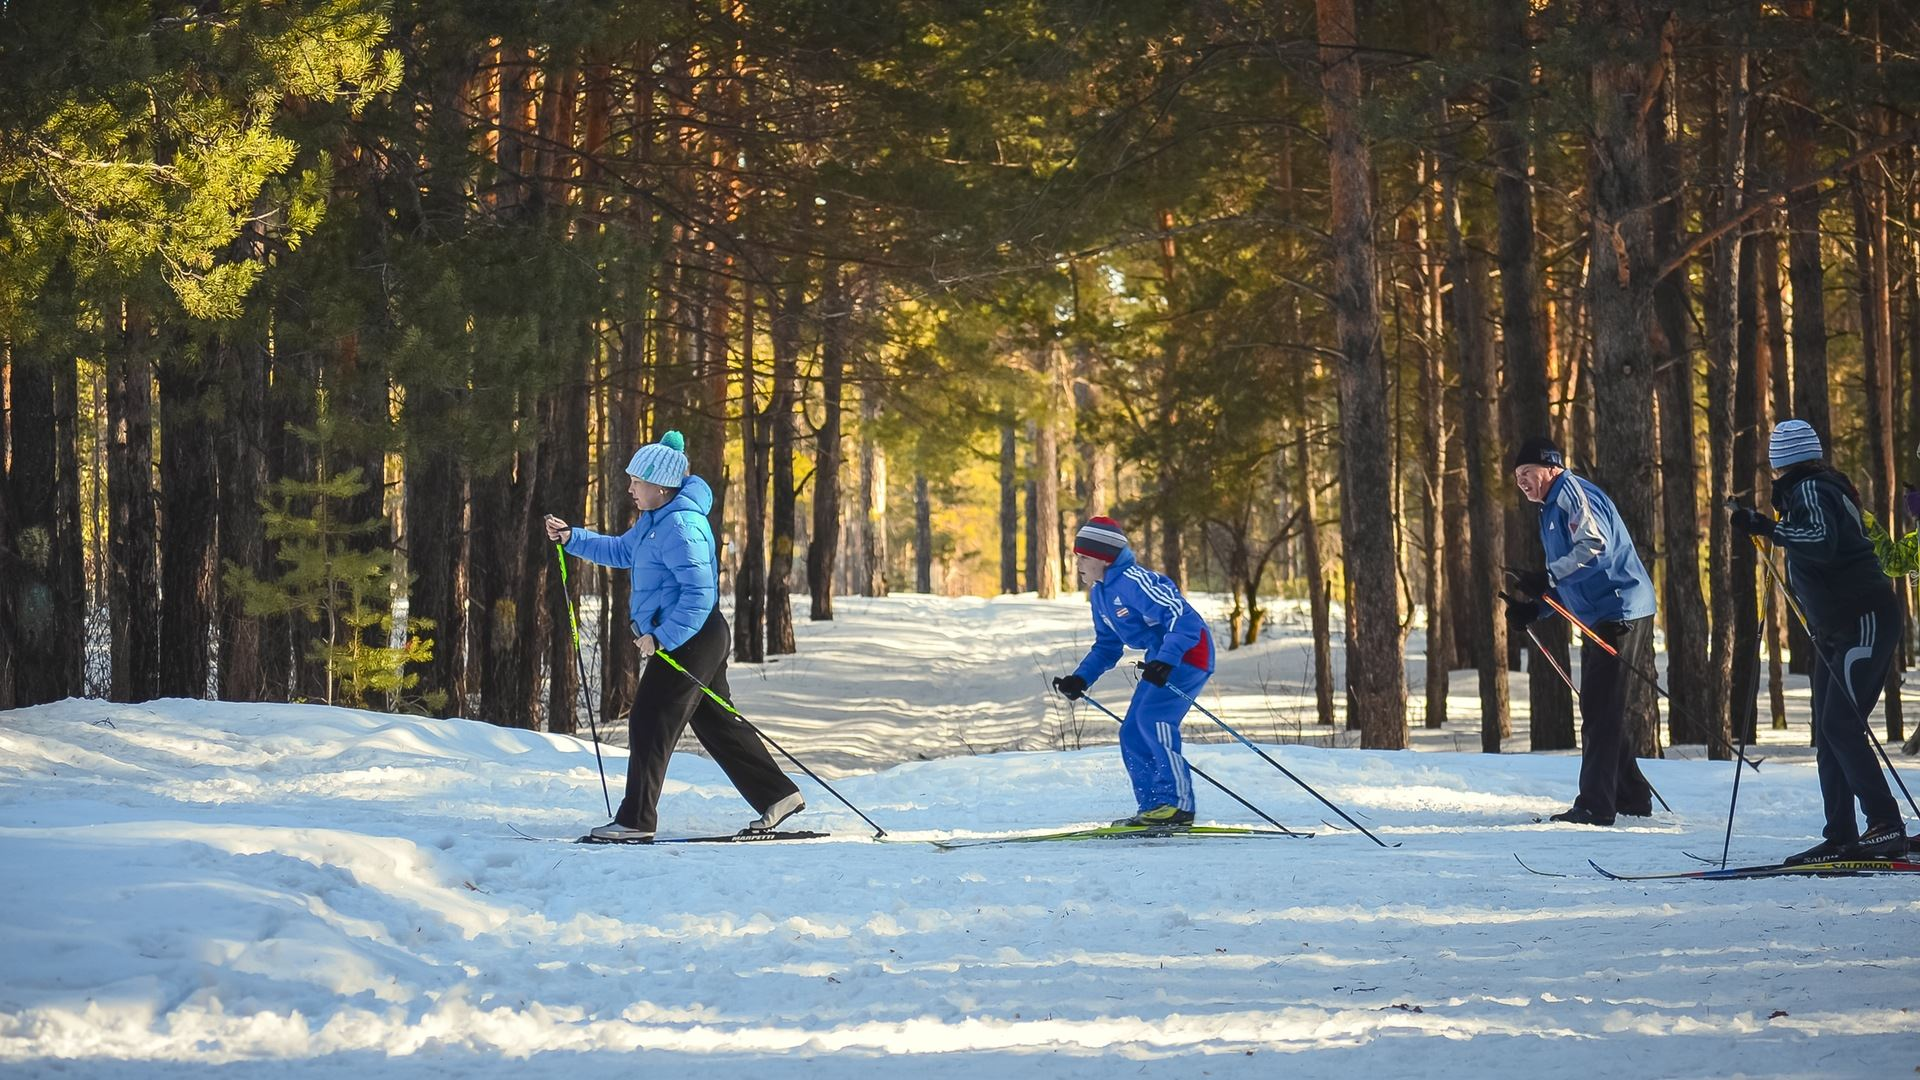 Cross-country skiing beginner course